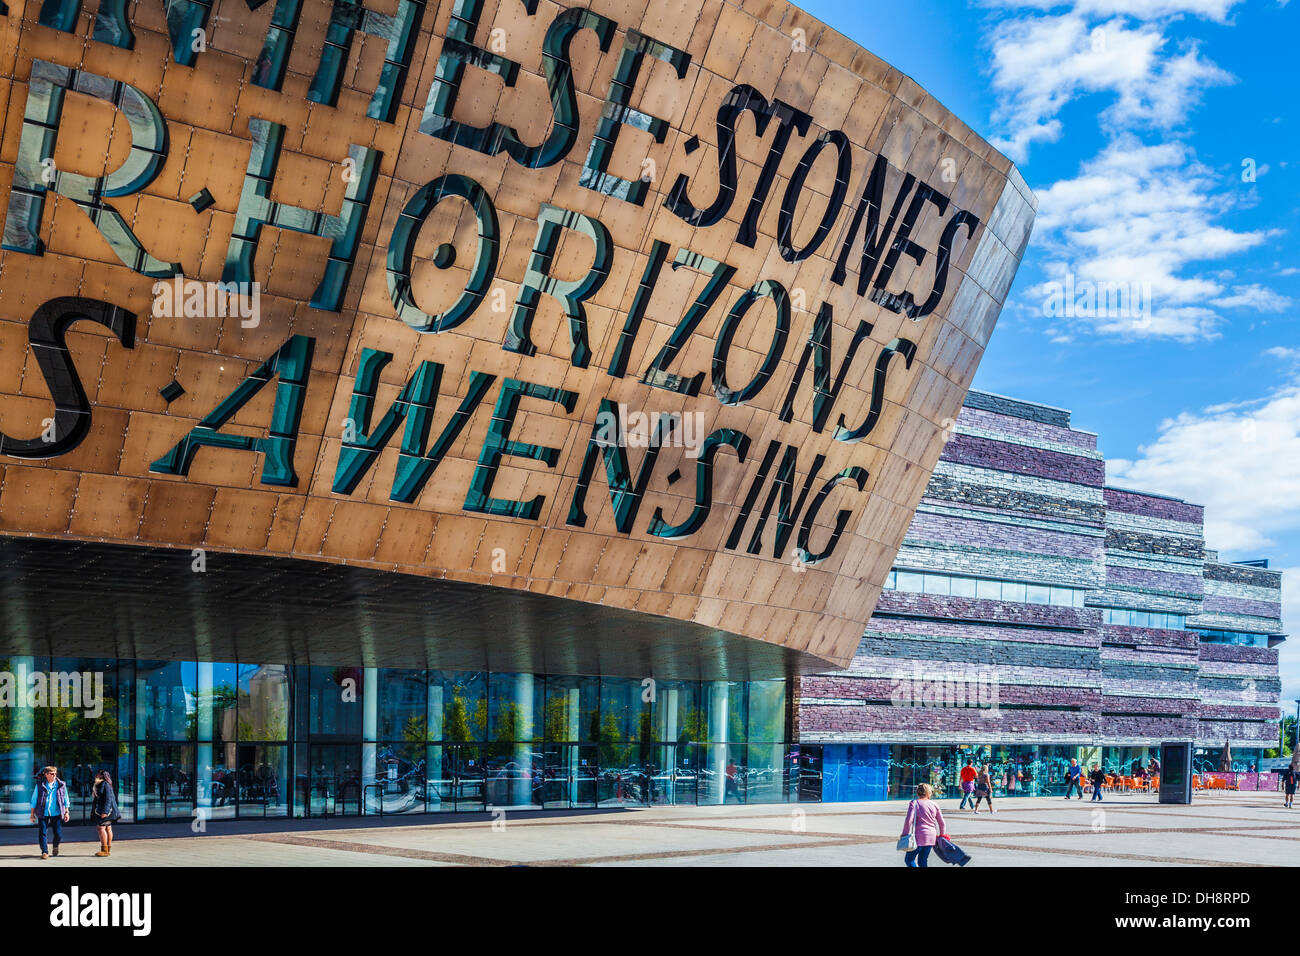 The Wales Millennium Centre in Cardiff Bay. - Stock Image